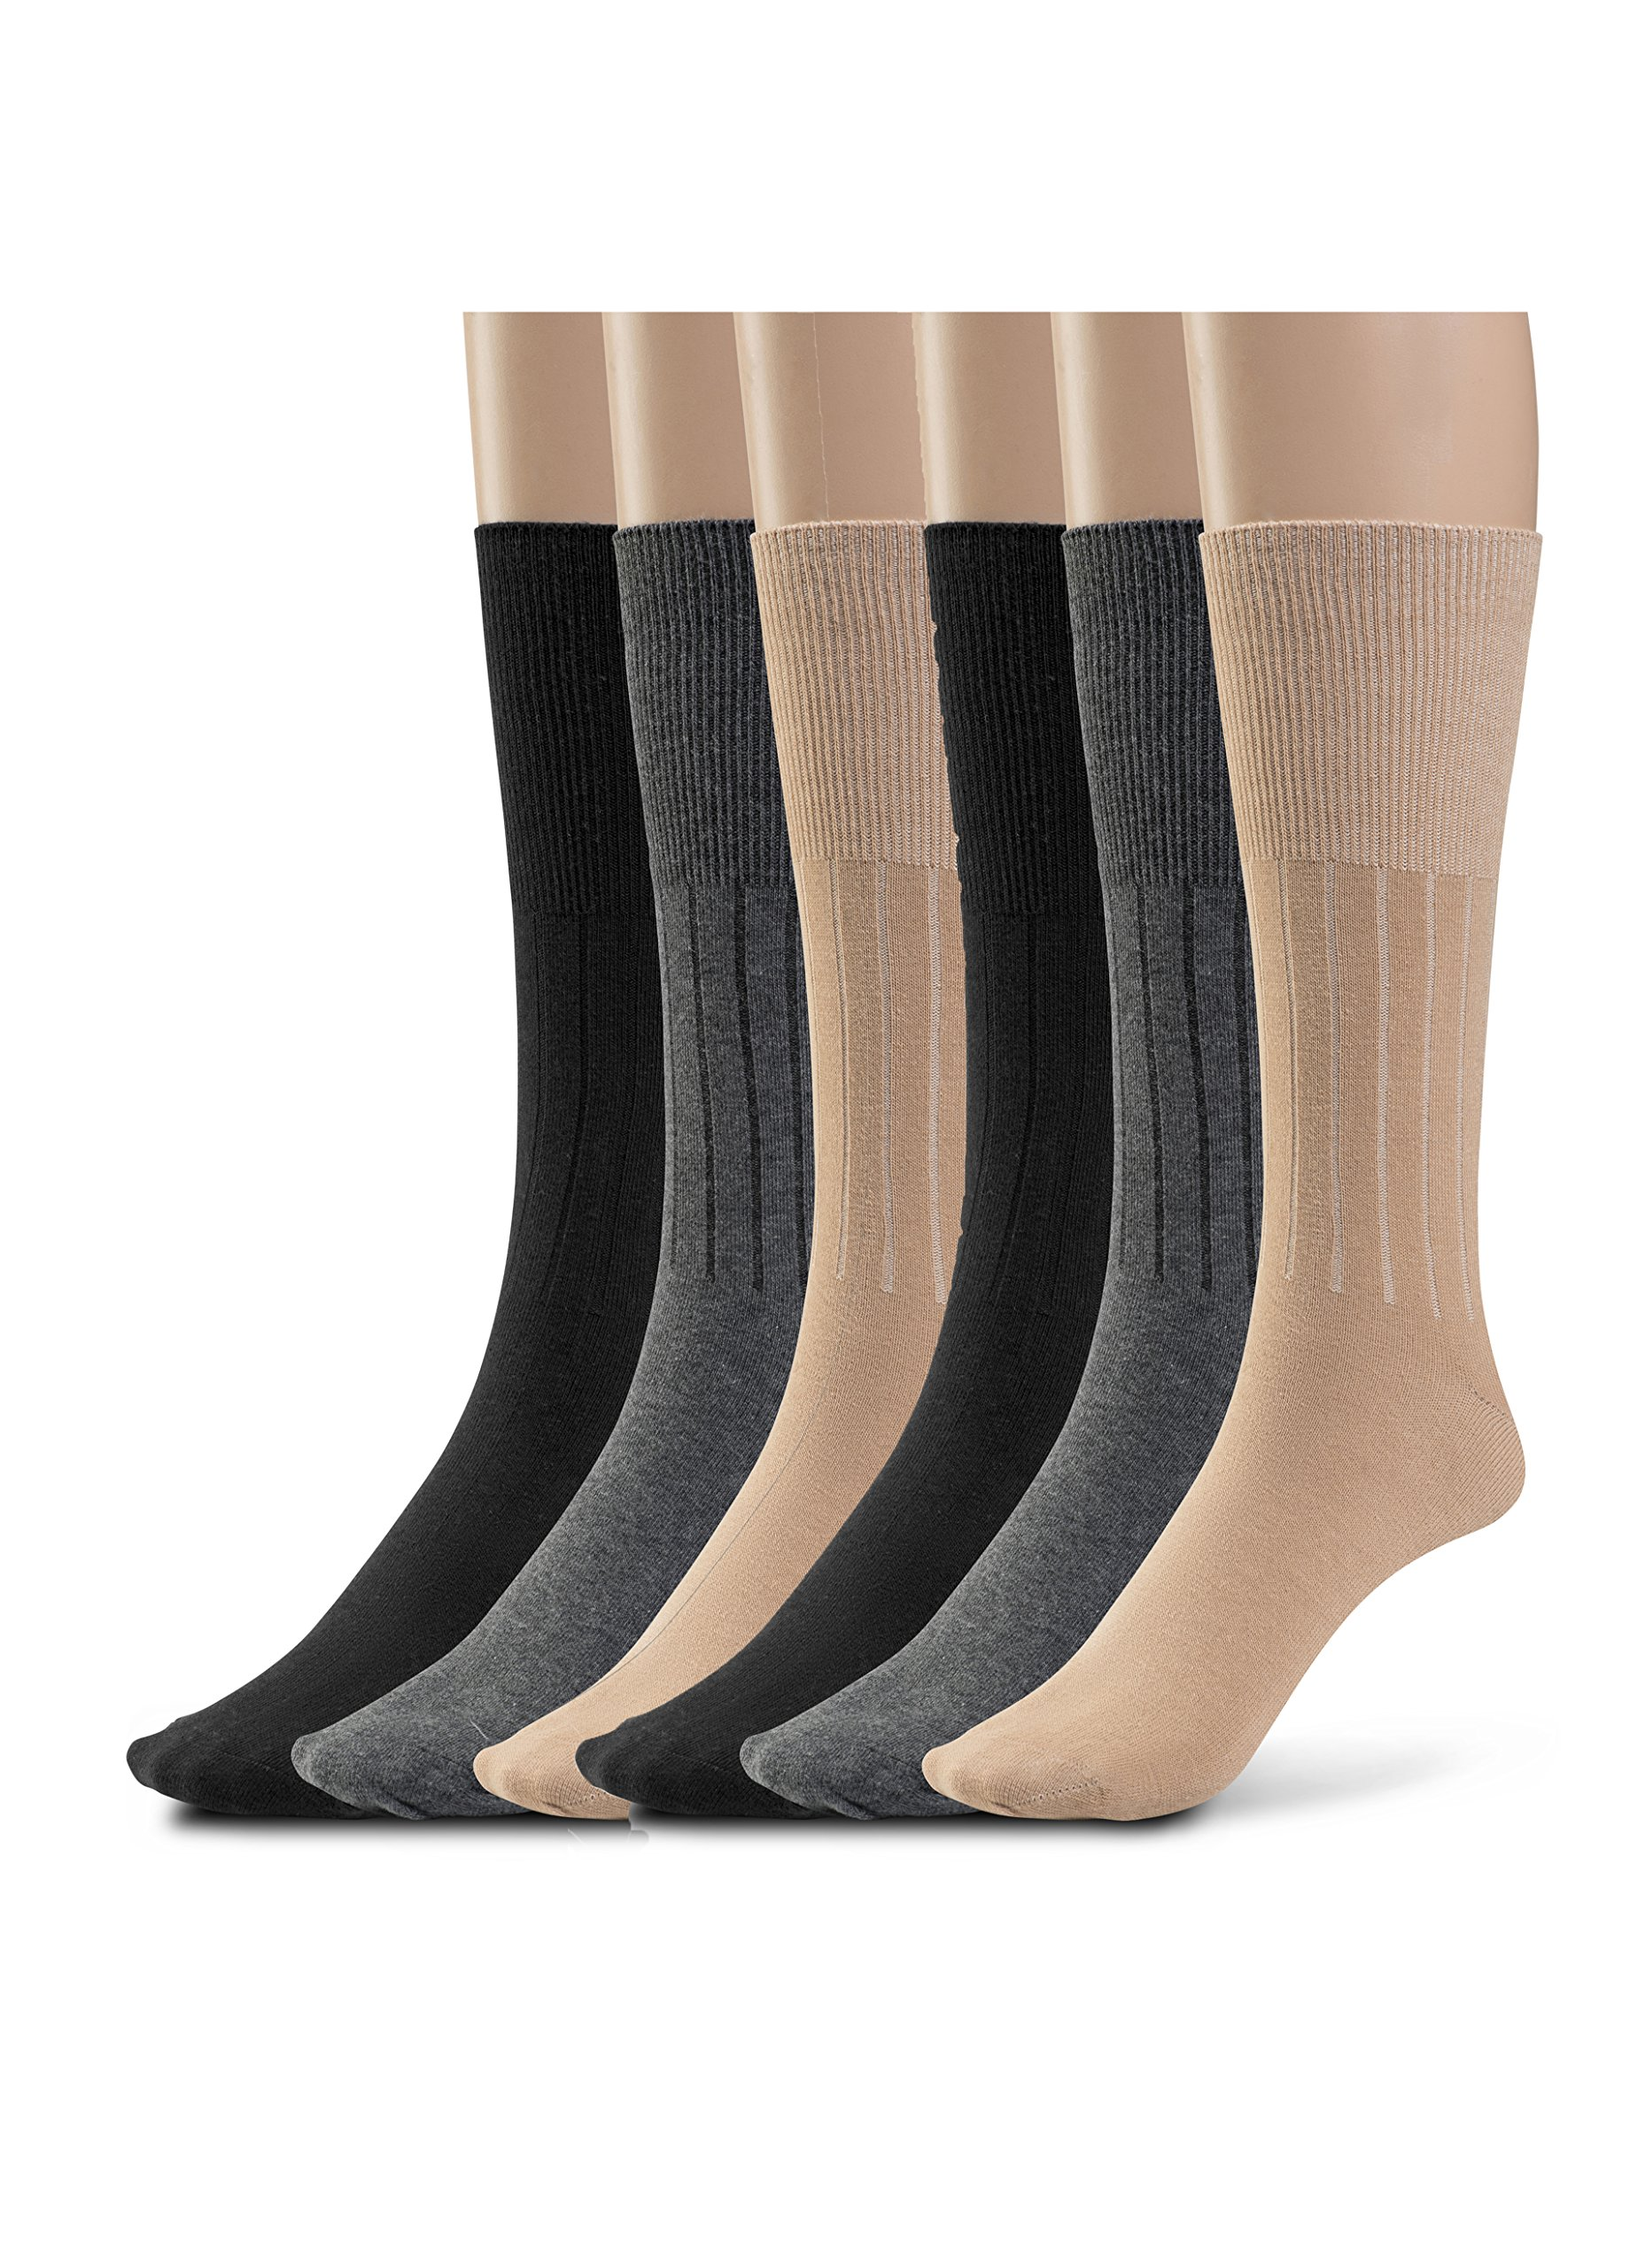 Silky Toes 3 or 6 Pk Men's Diabetic Non Binding Cotton Dress Socks, Multi Colors Also Available in Plus Sizes…